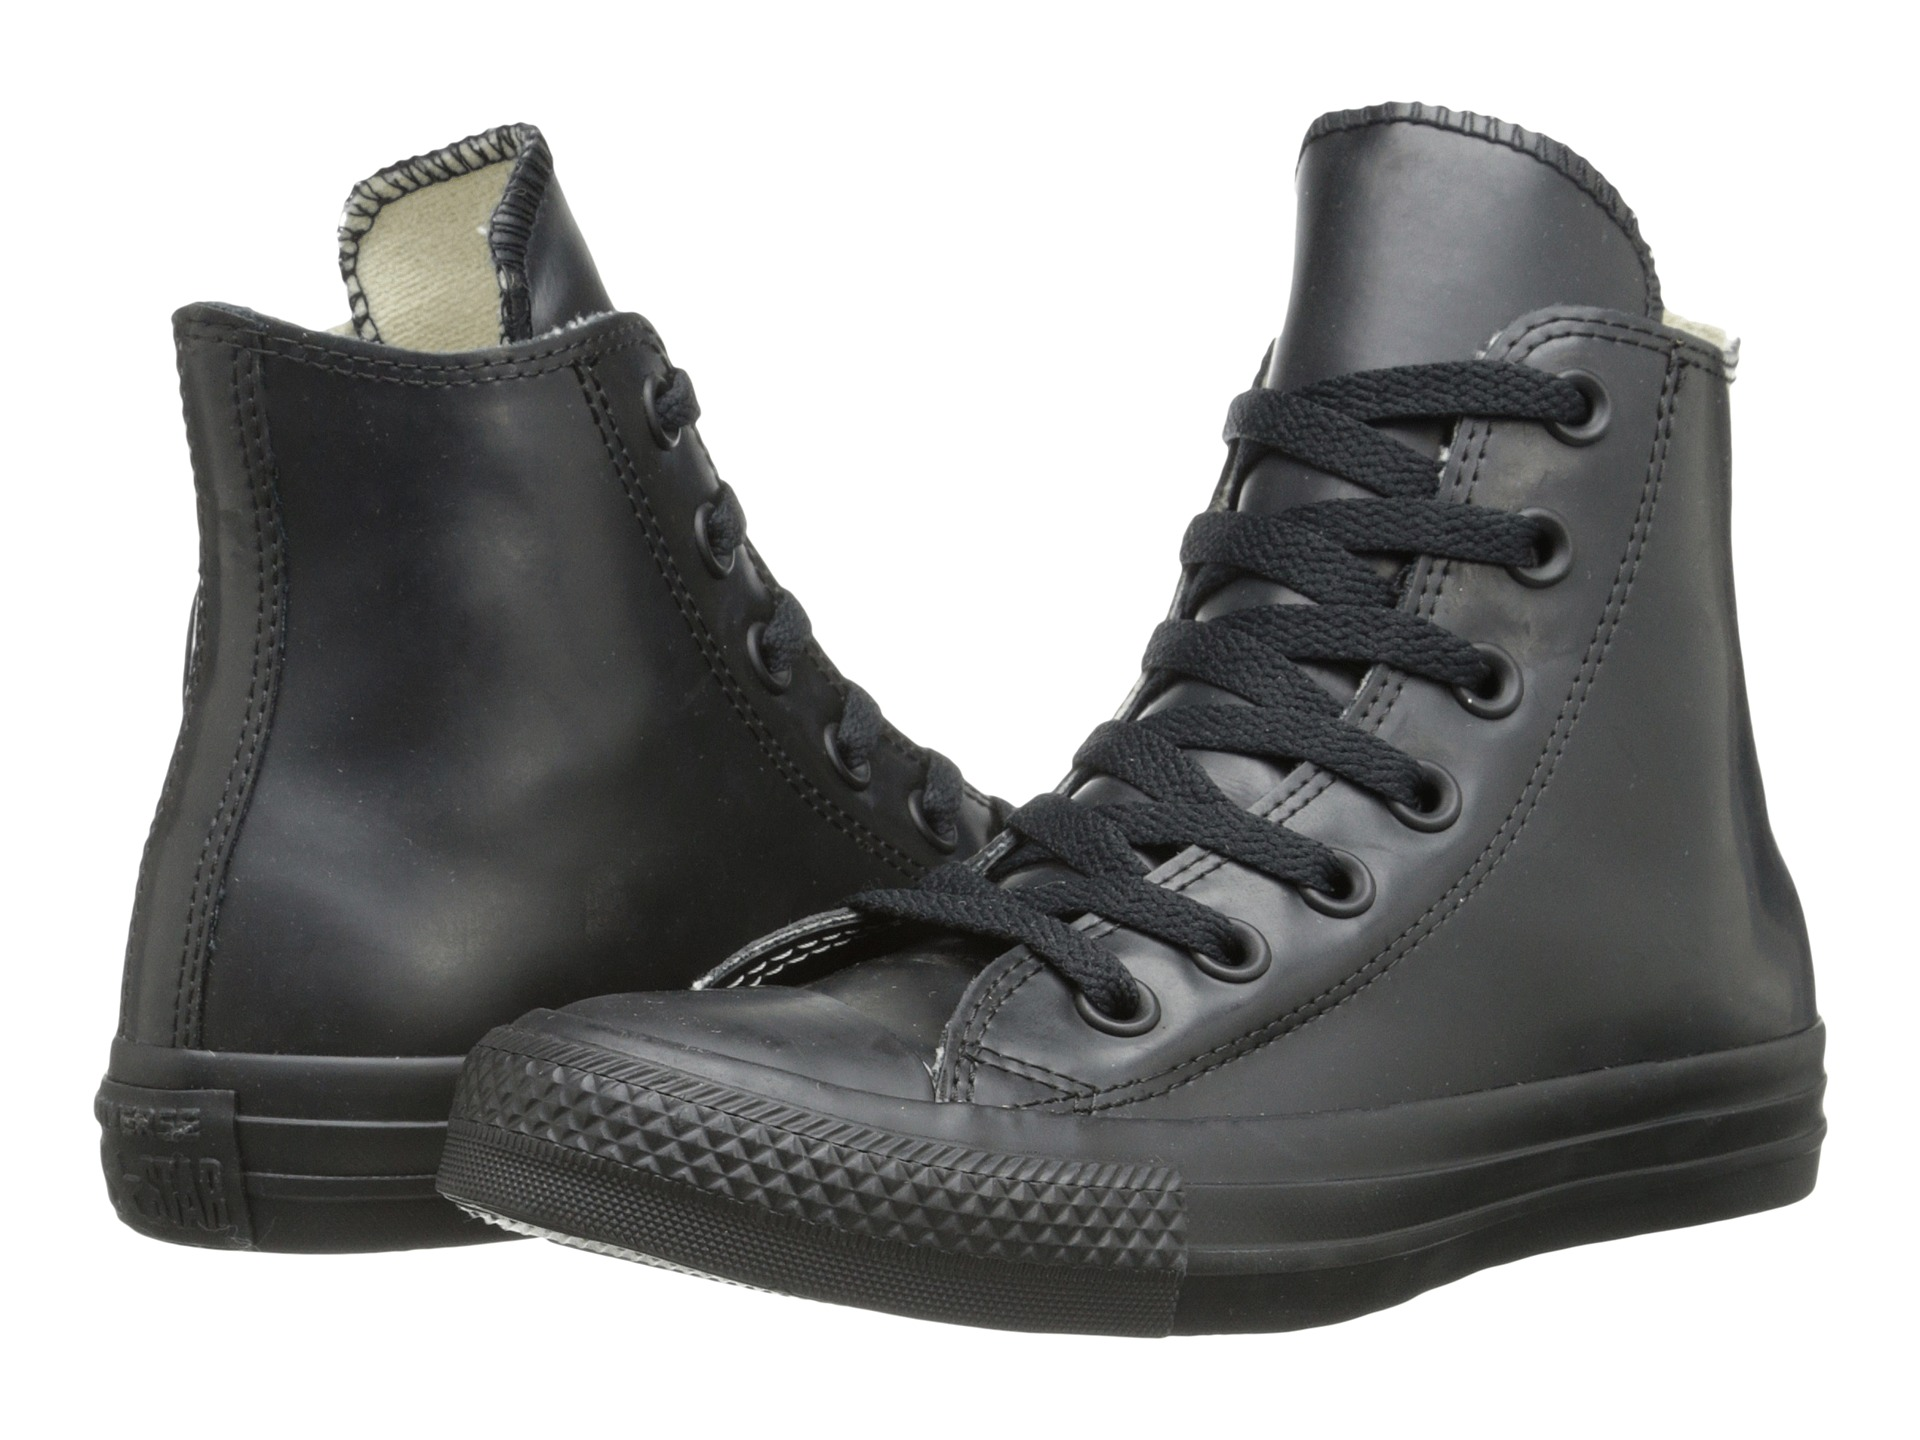 converse all star rubber reviews on garcinia